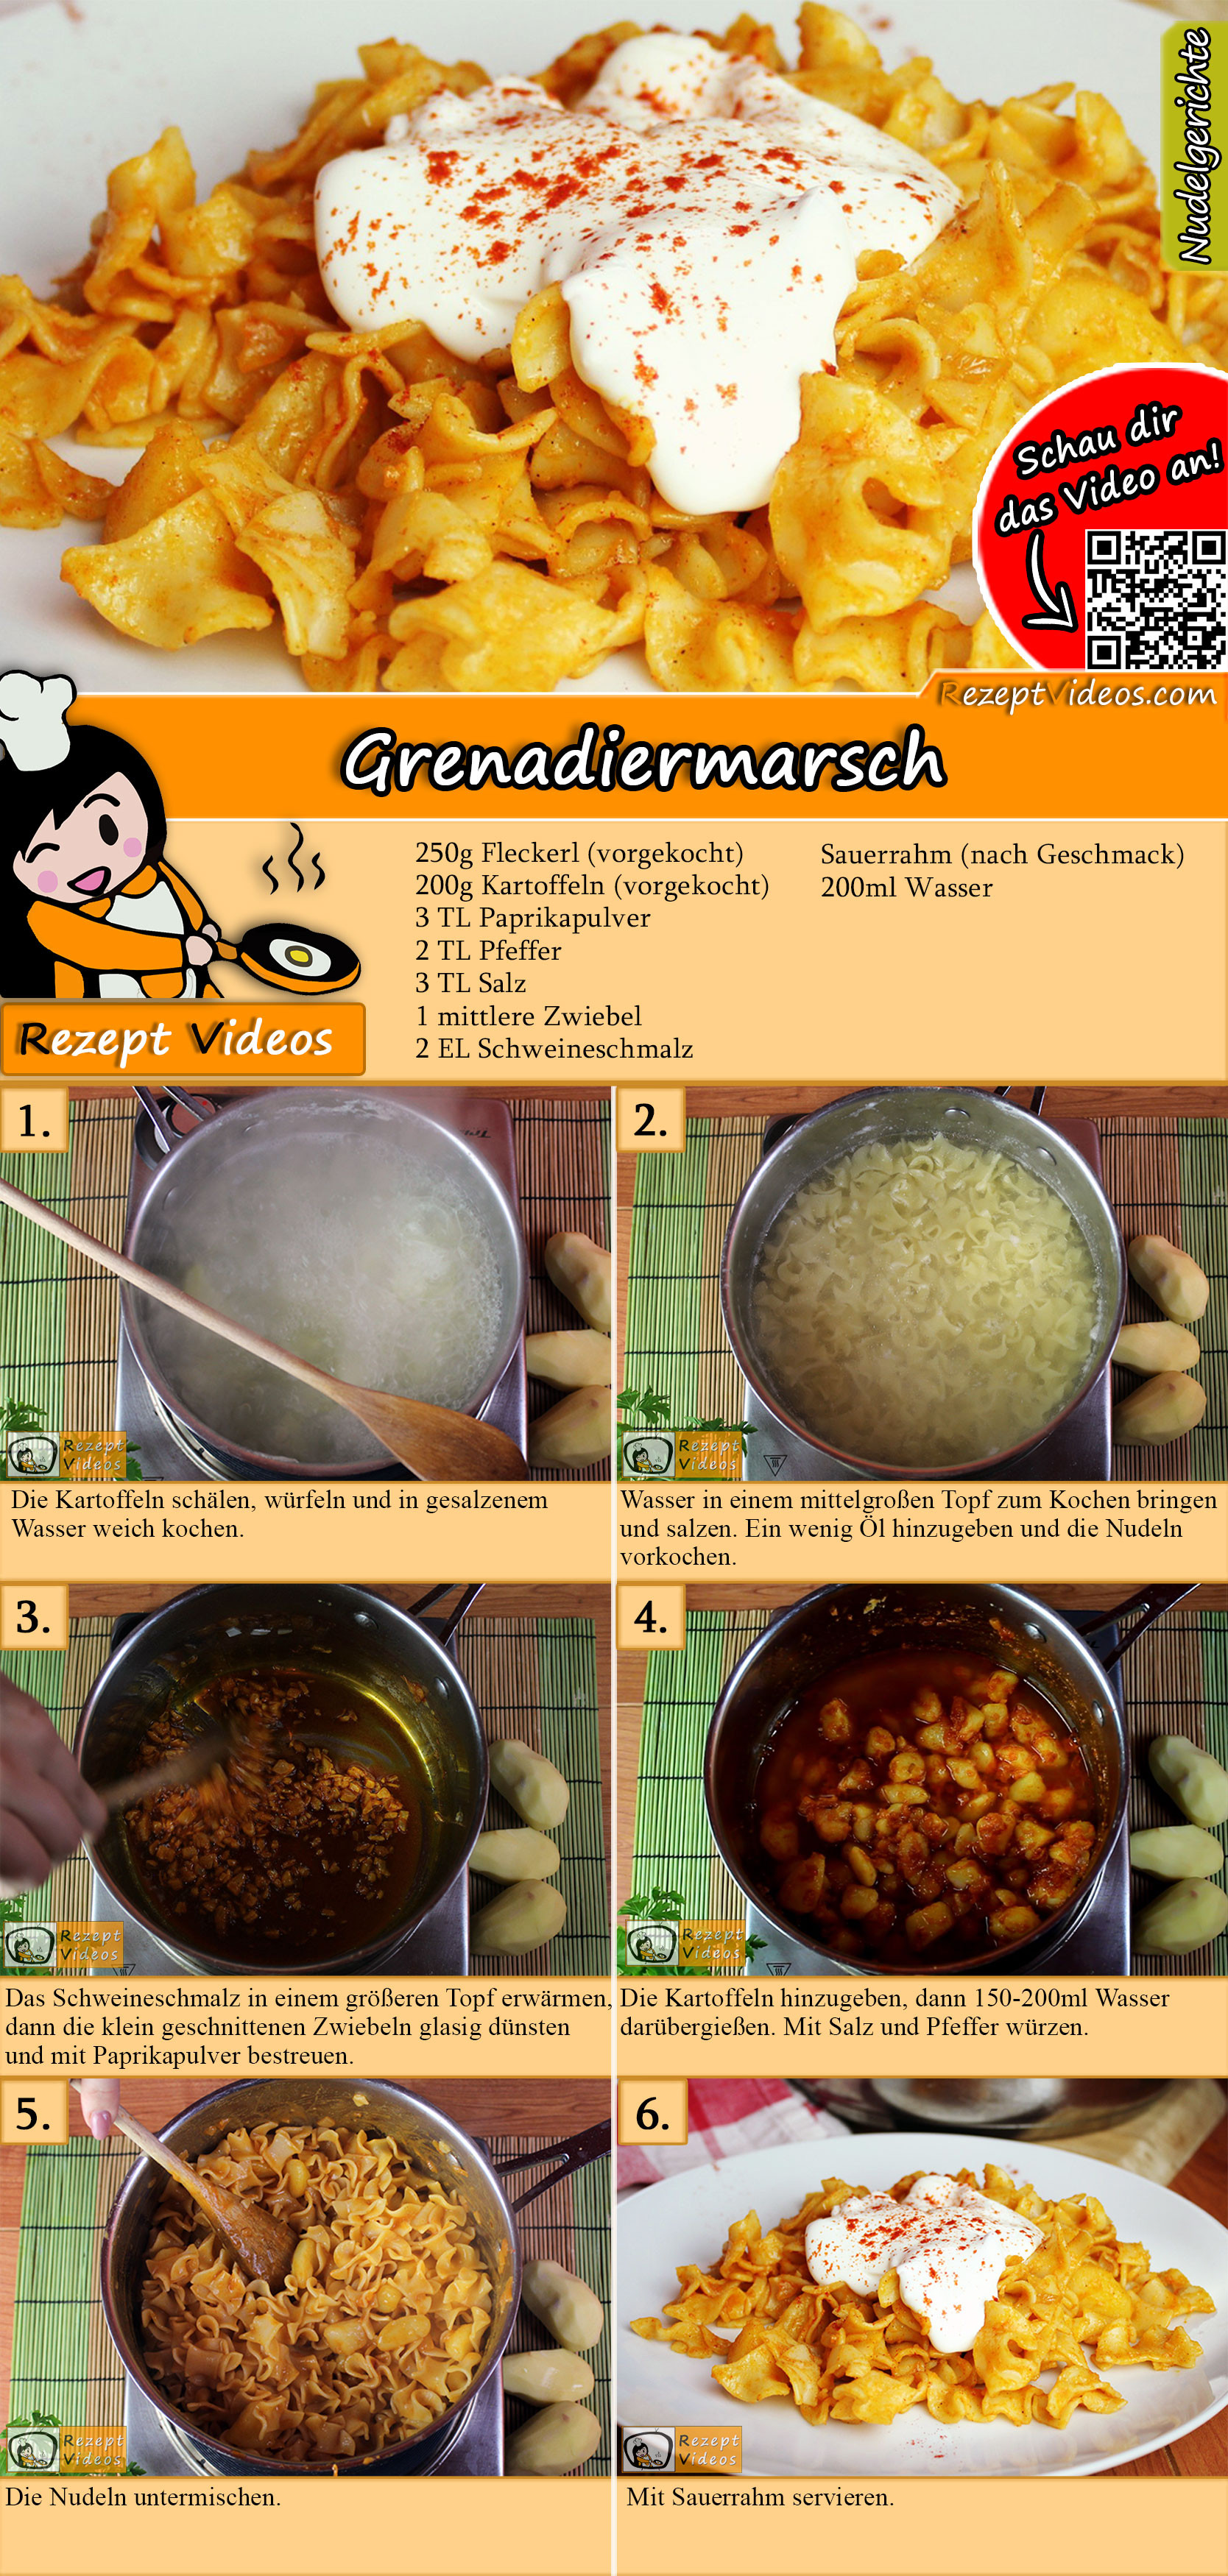 Grenadiermarsch Rezept mit Video